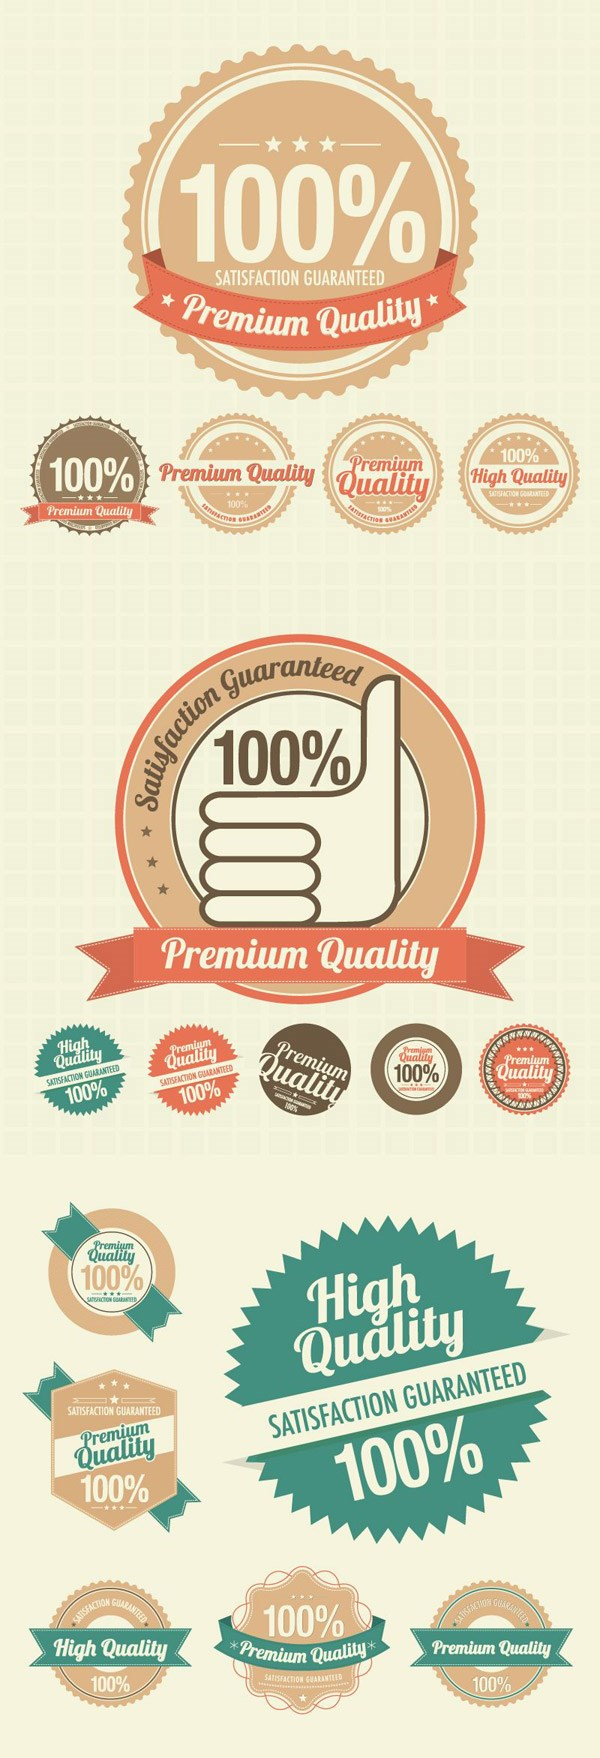 Quaint quality tag vector